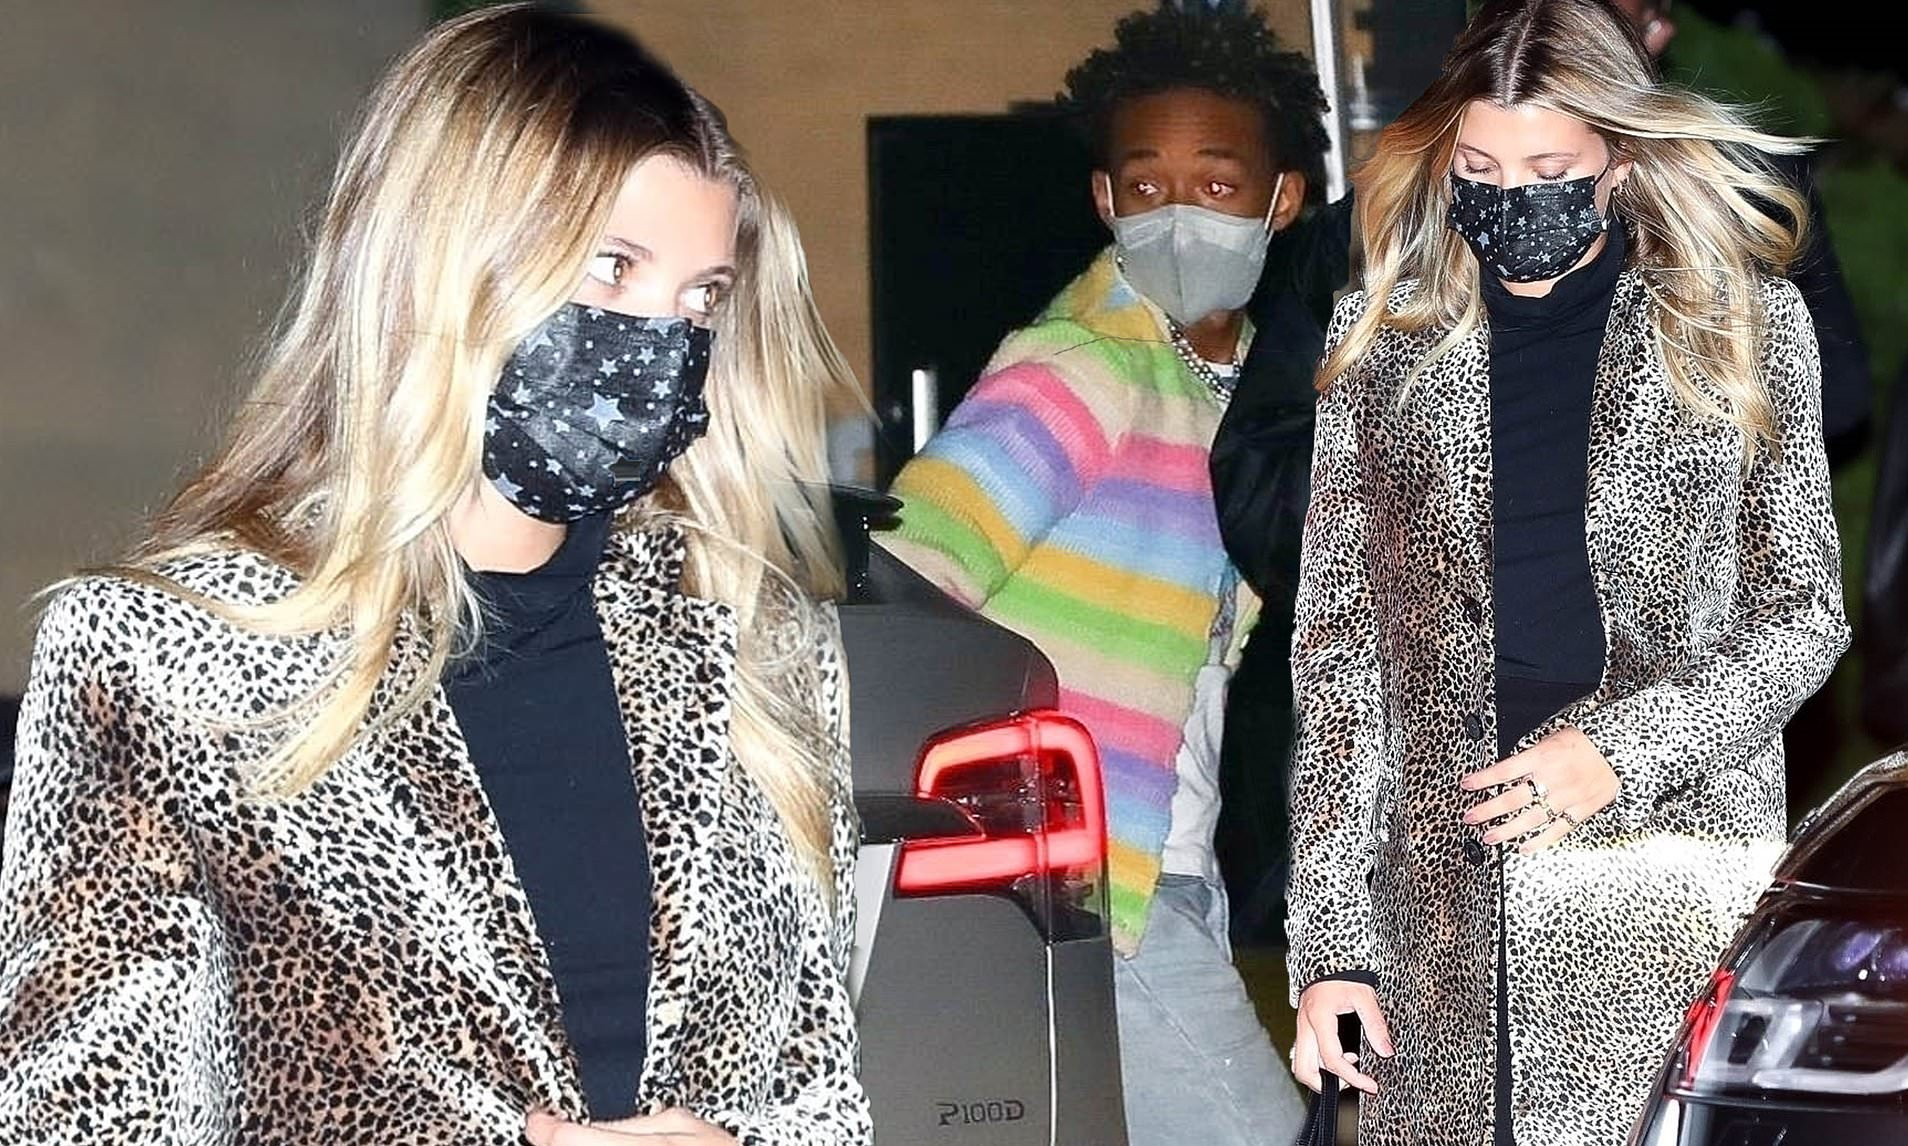 Jaden Smith and Sofia Richie are back in Romantic Relationship